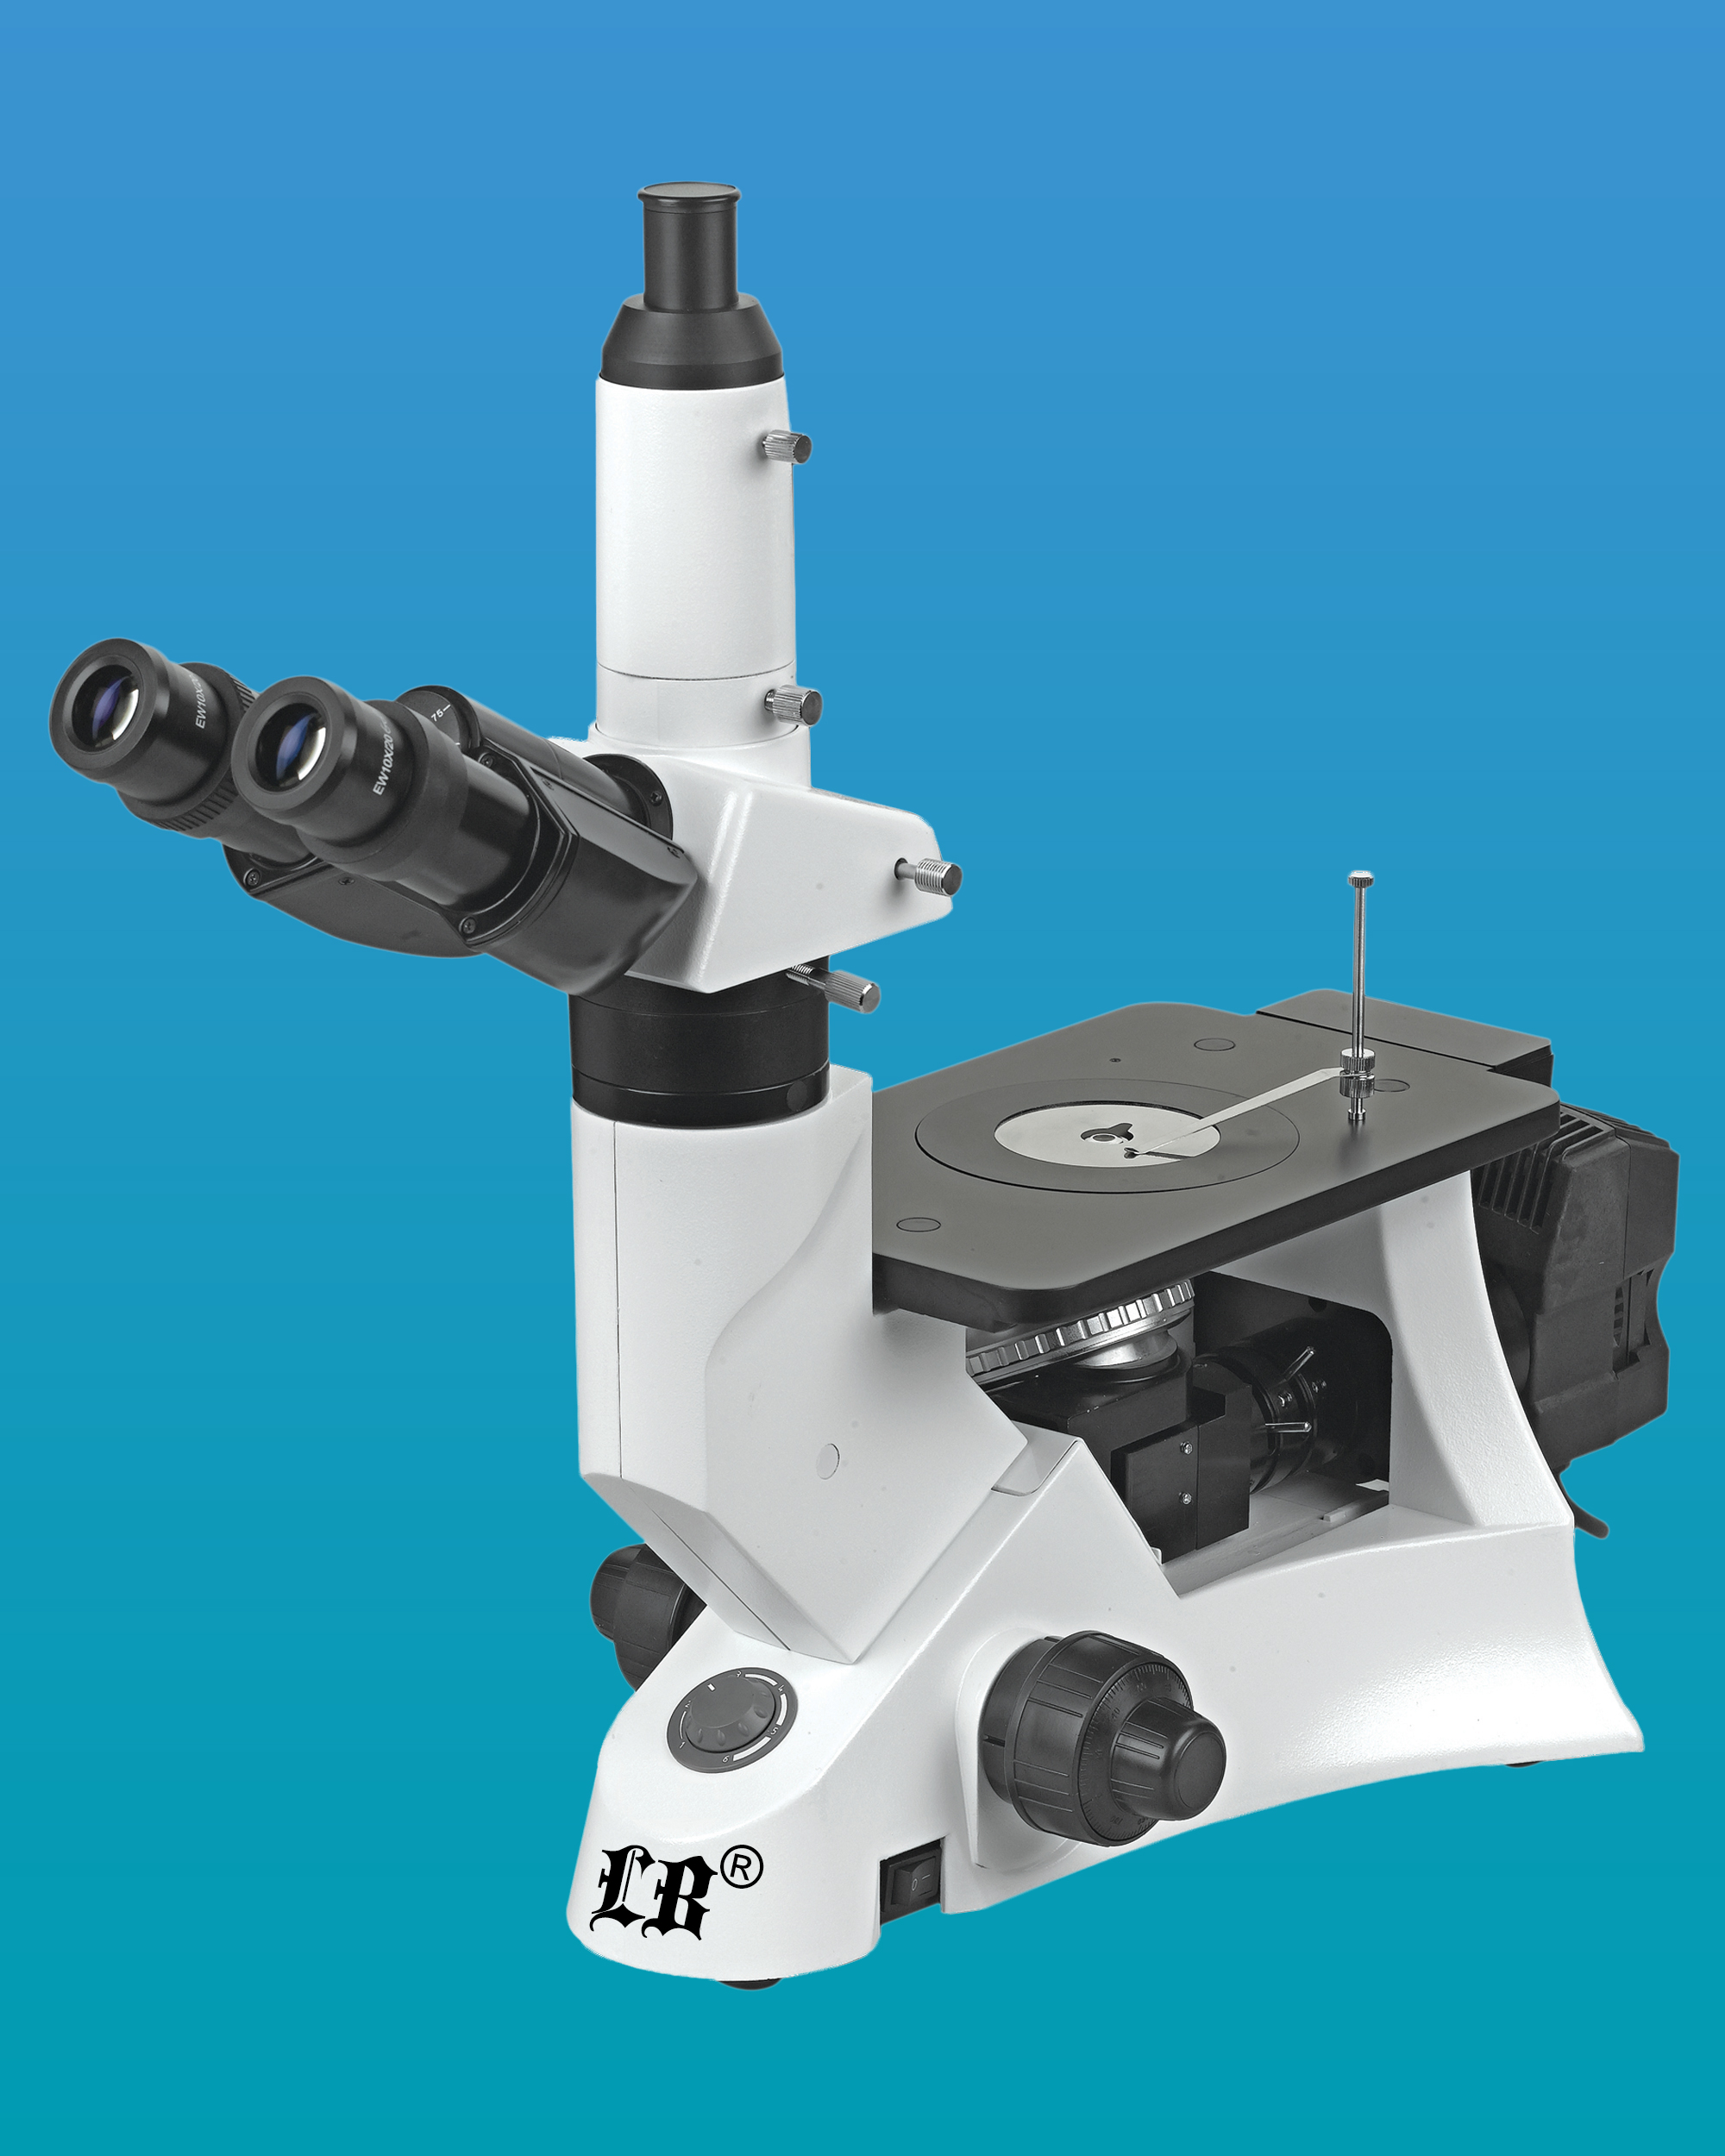 [LB-602] Trinocular Inverted Metallurgical Microscope w/ Infinite Optical System